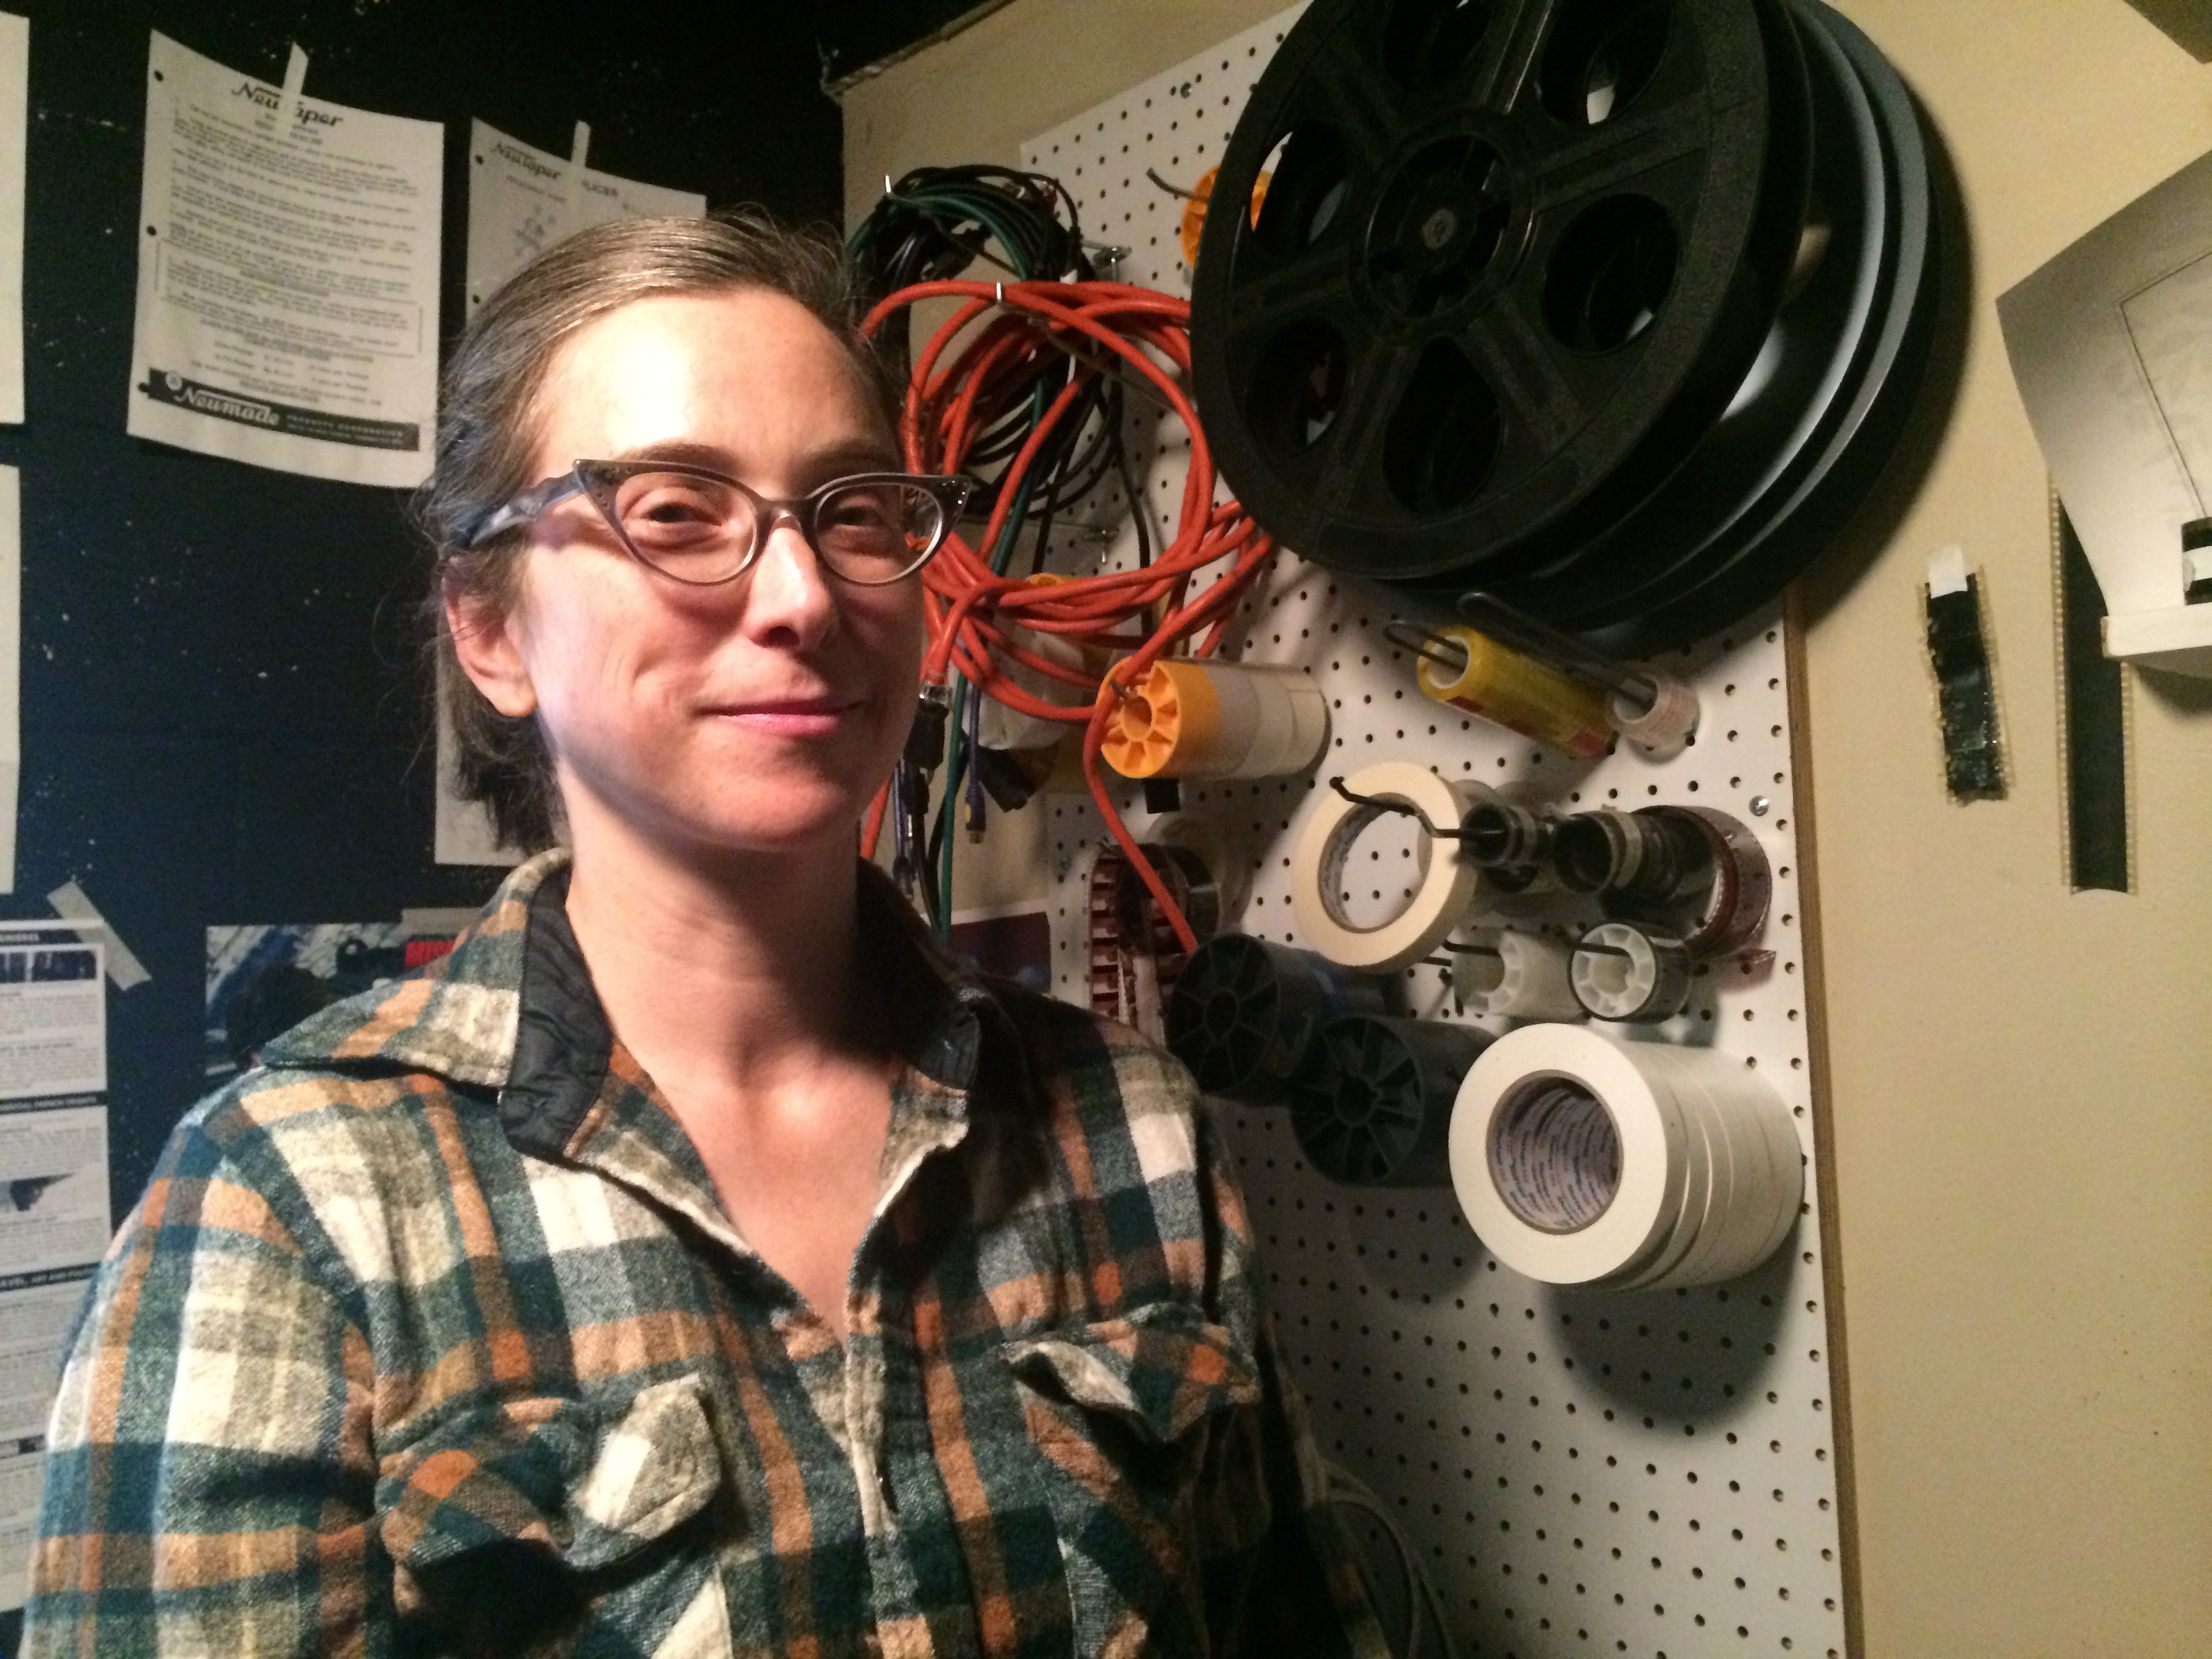 A night with the projectionist